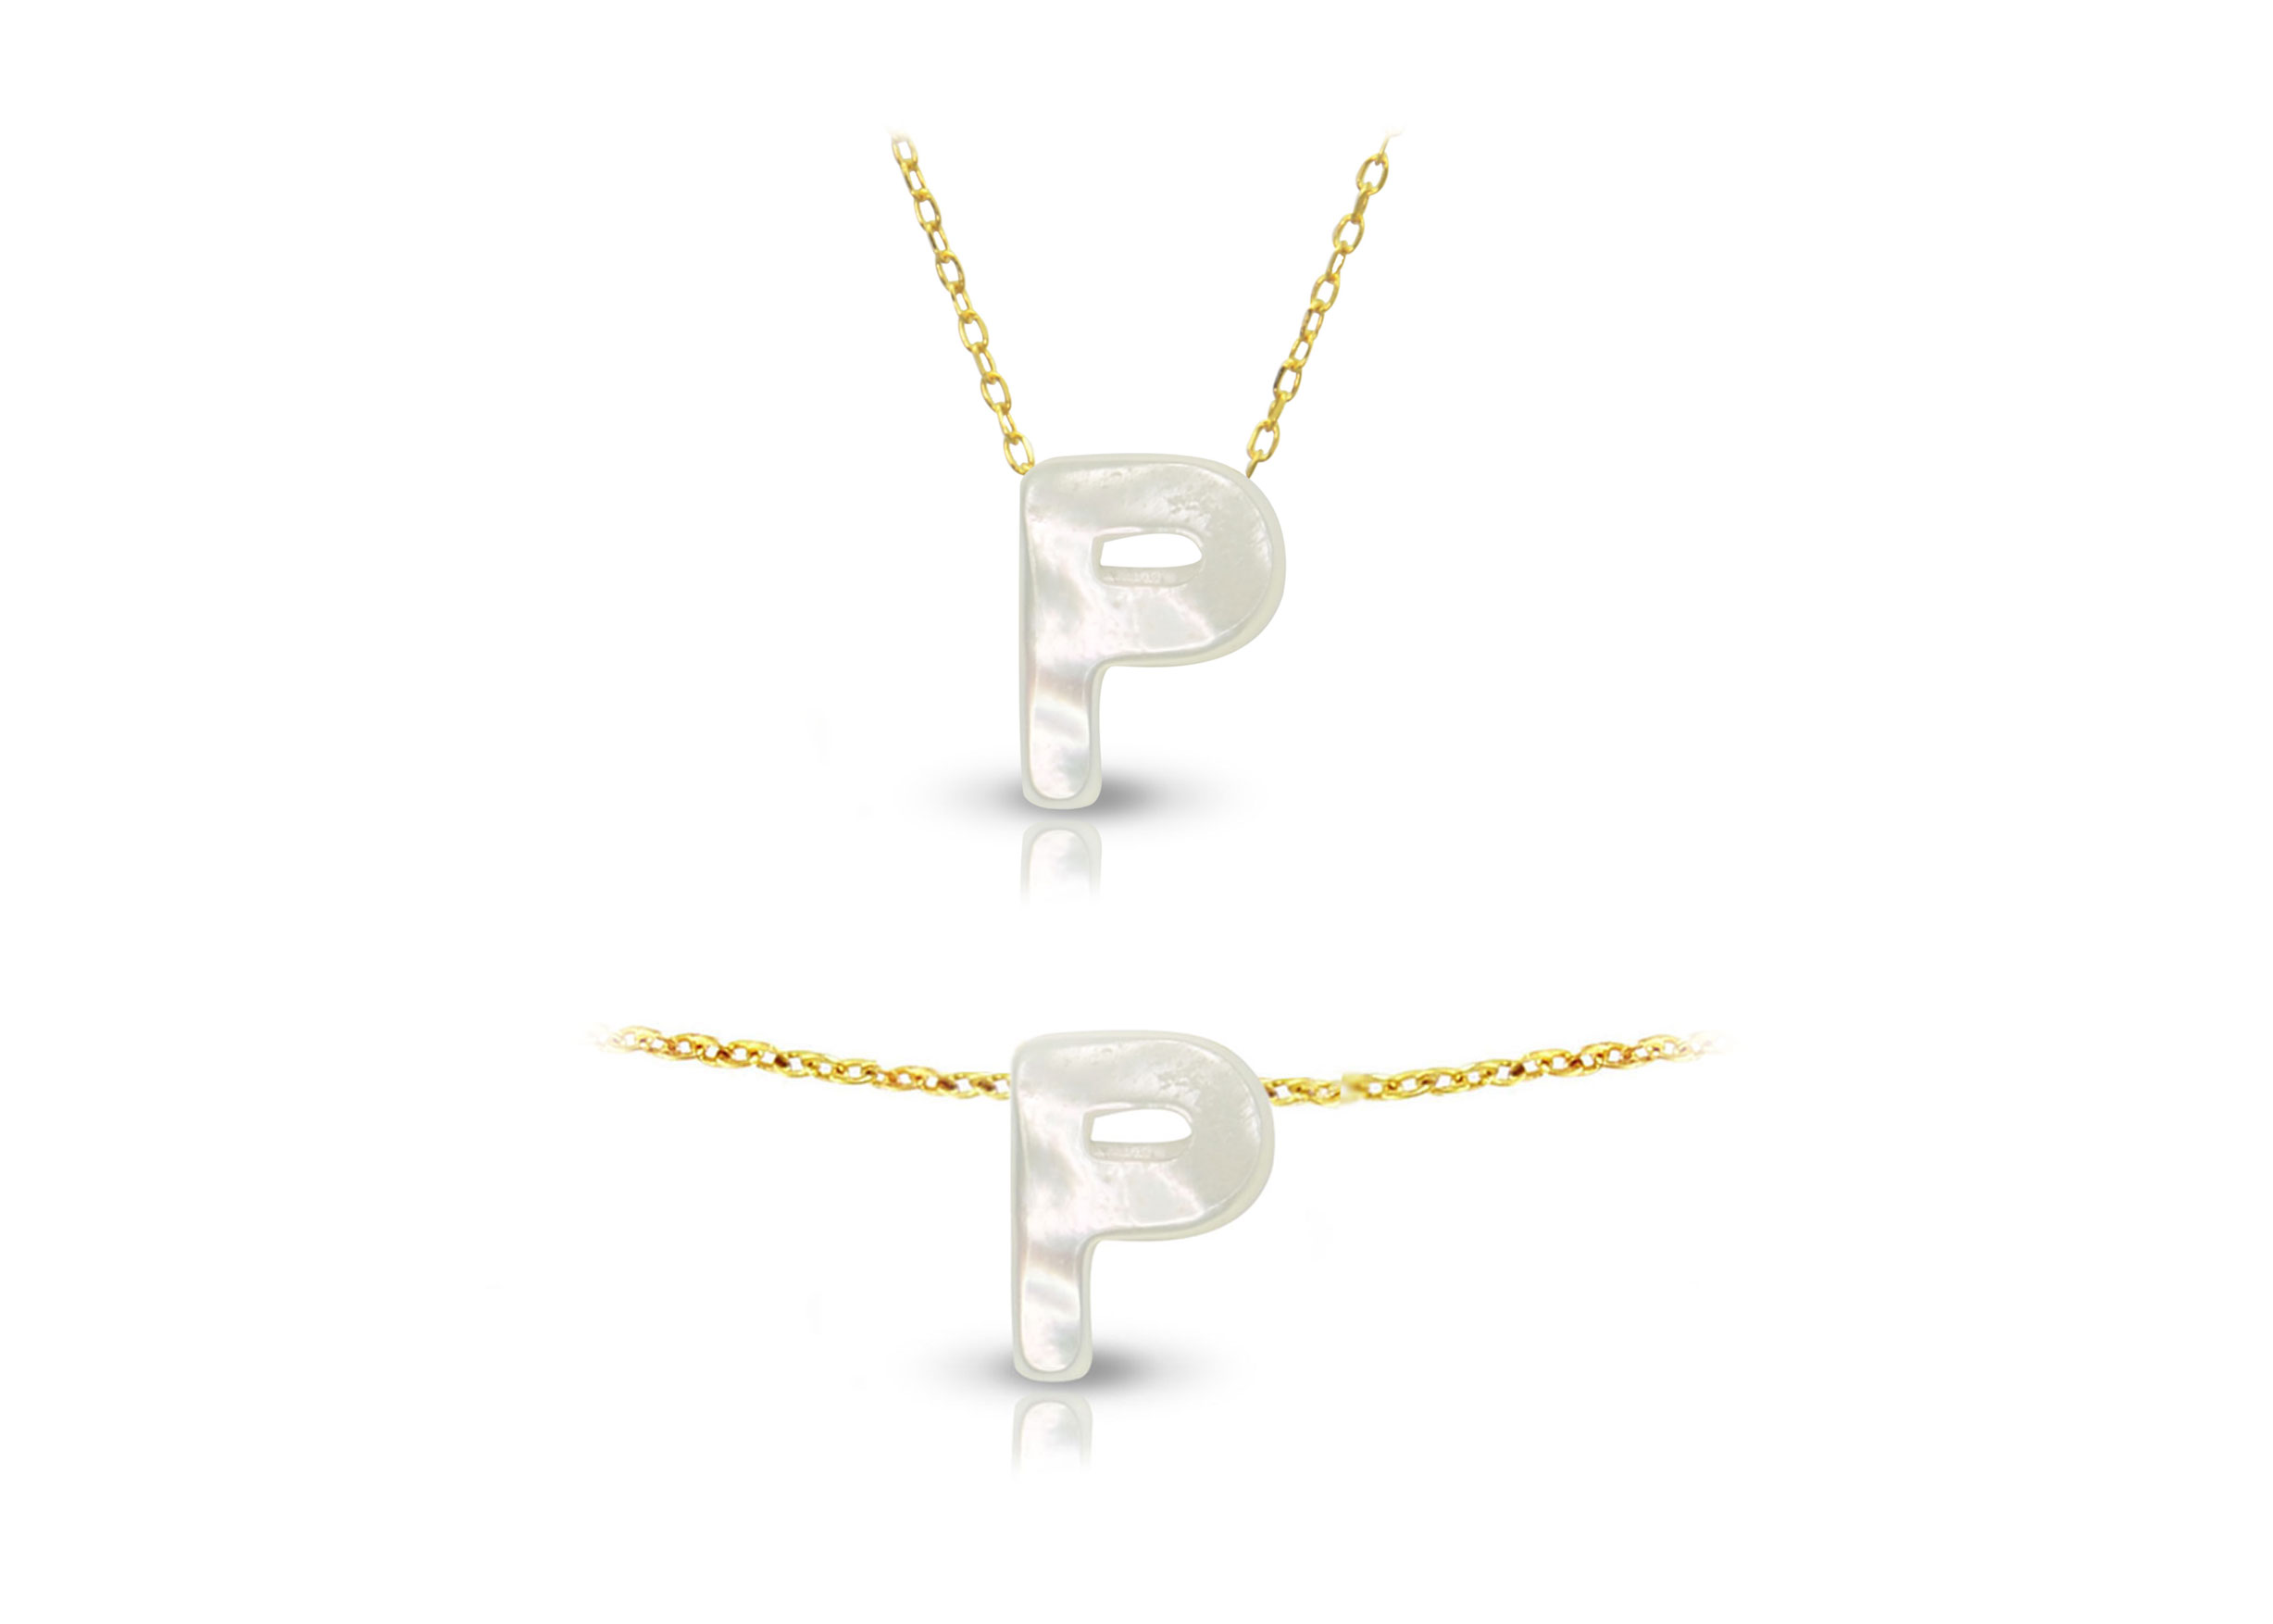 Vera Perla 18K Gold P Letter  Mother of Pearl Jewelry Set